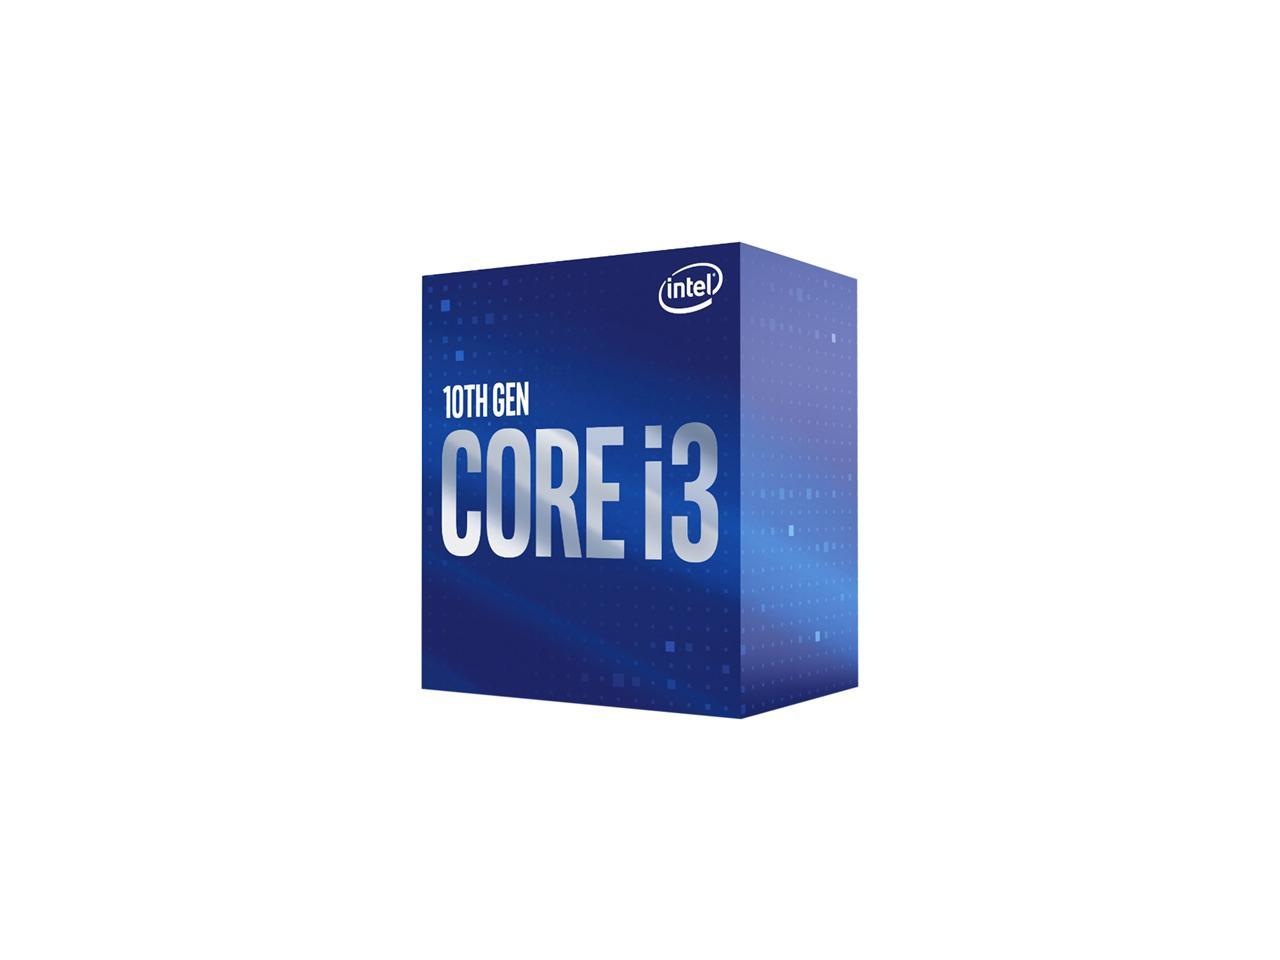 Intel 400 Series chipset 65W Intel Core i3-10300 Desktop Processor 4 Cores up to 4.4 GHz/  LGA1200